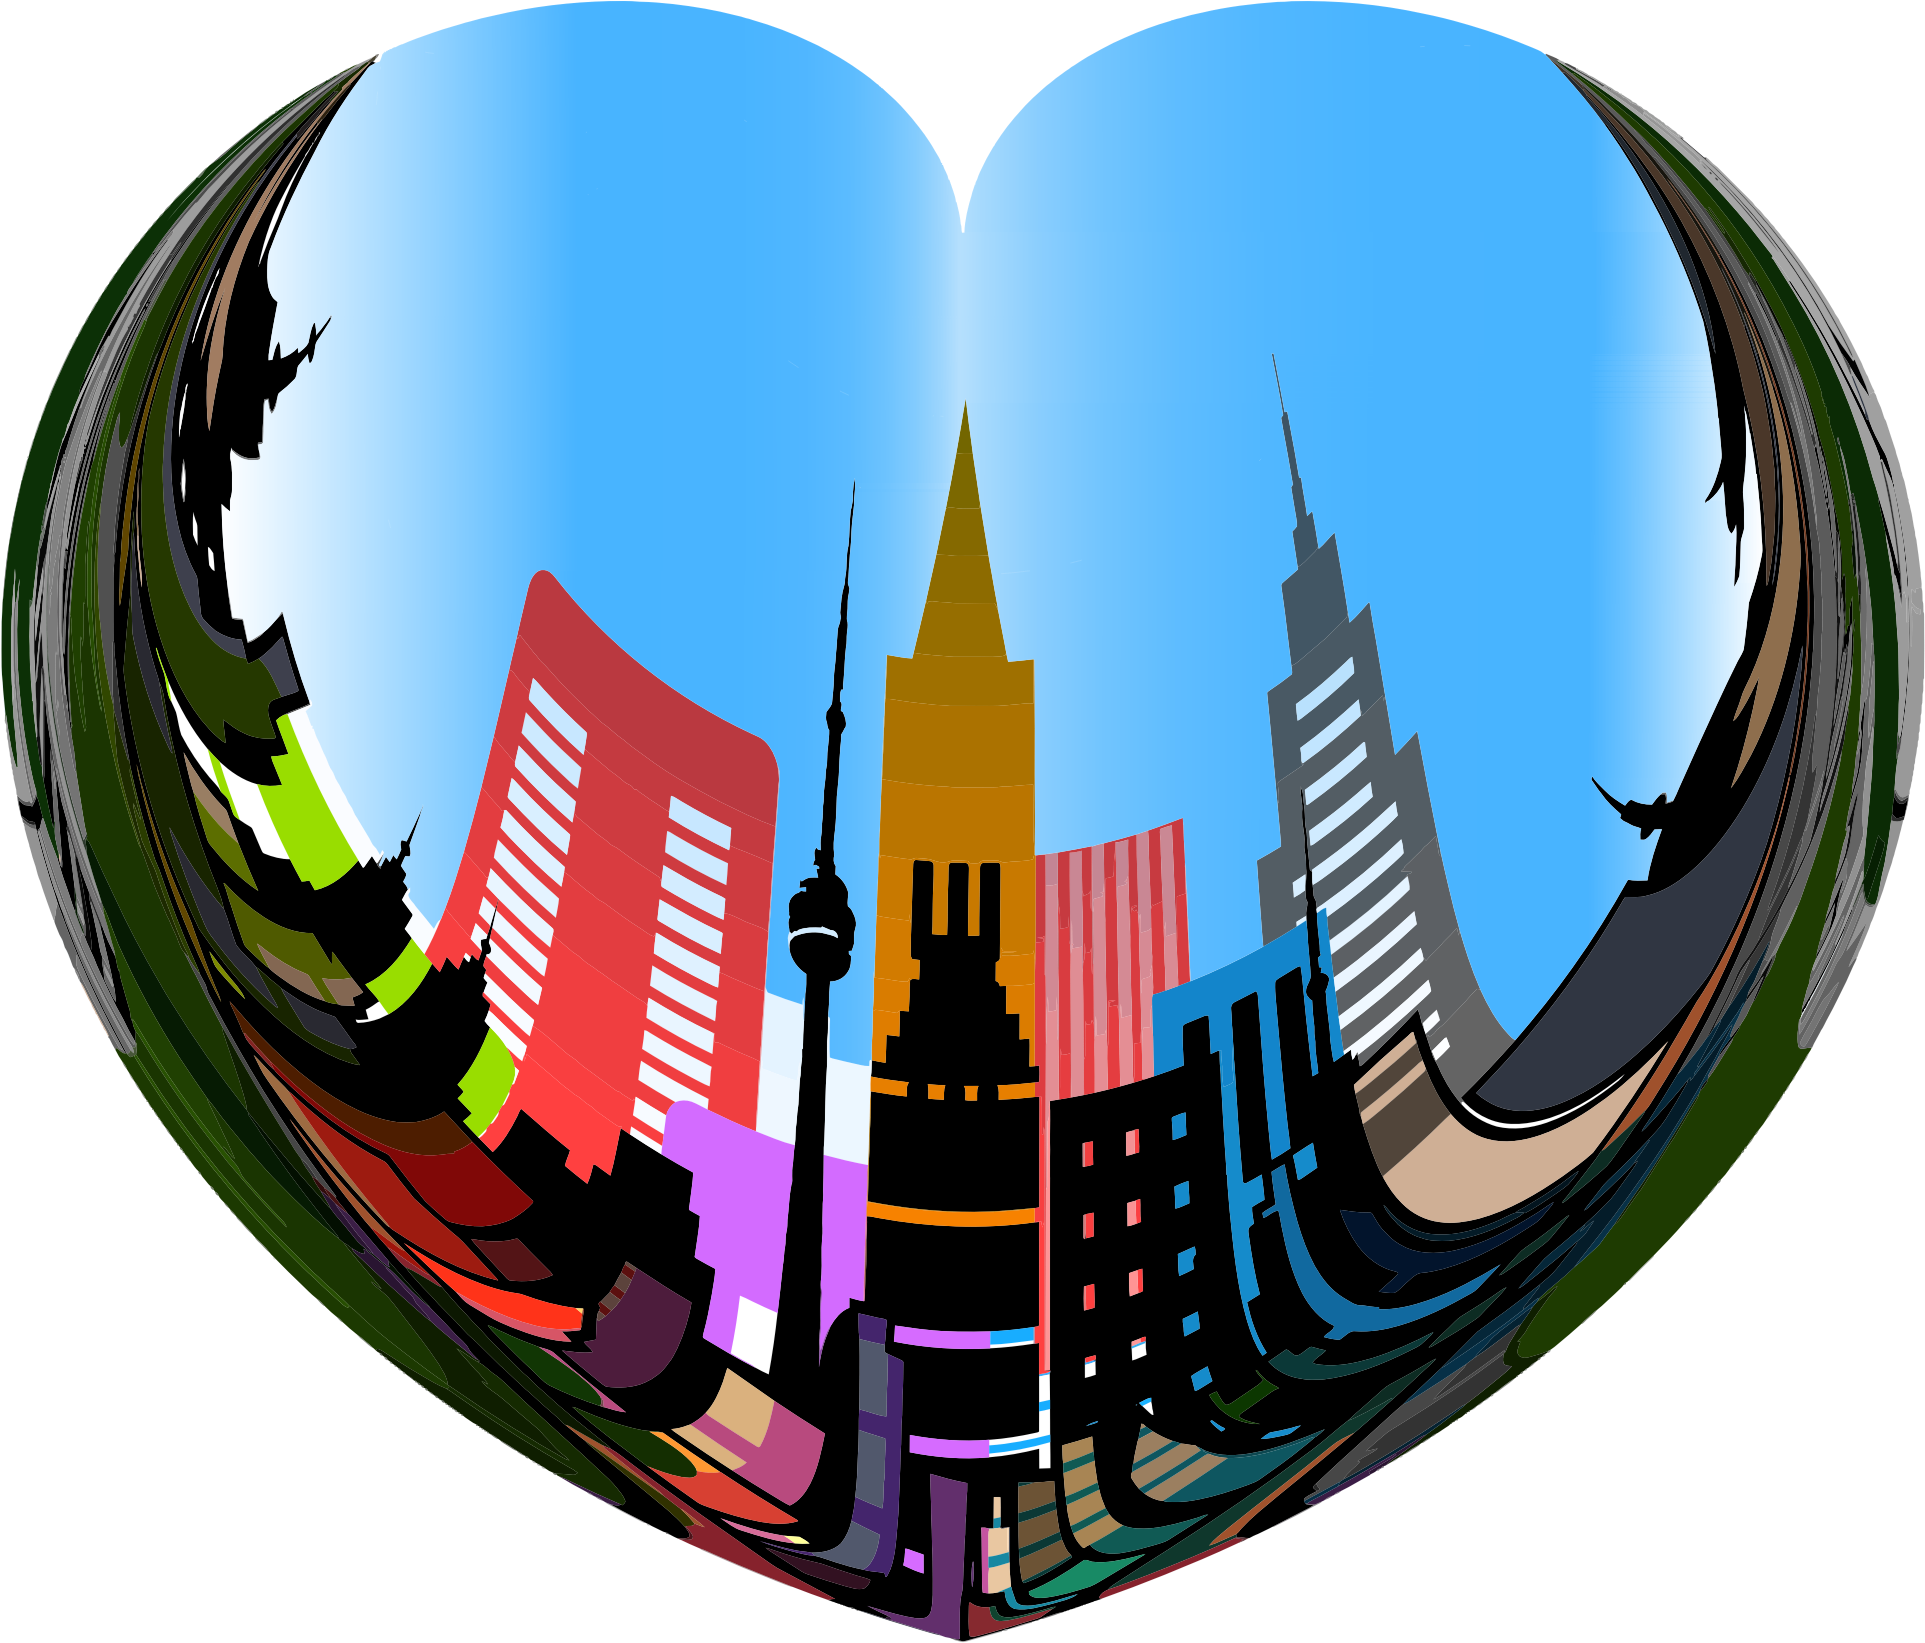 Heart Of The City by GDJ